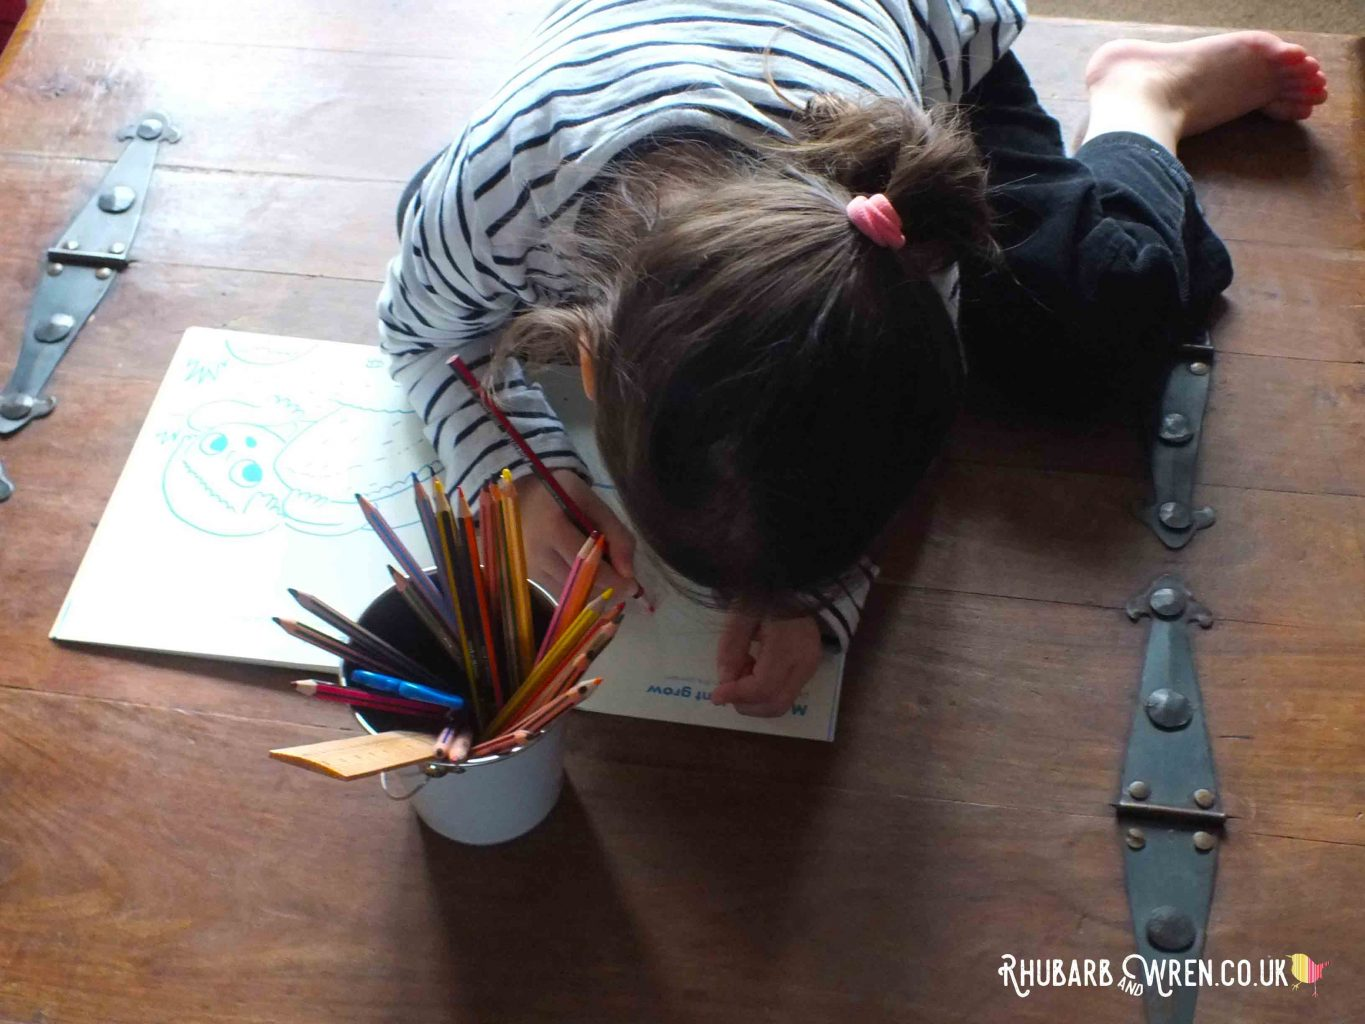 Child colouring in Okido magazine page, with big pot of pencils